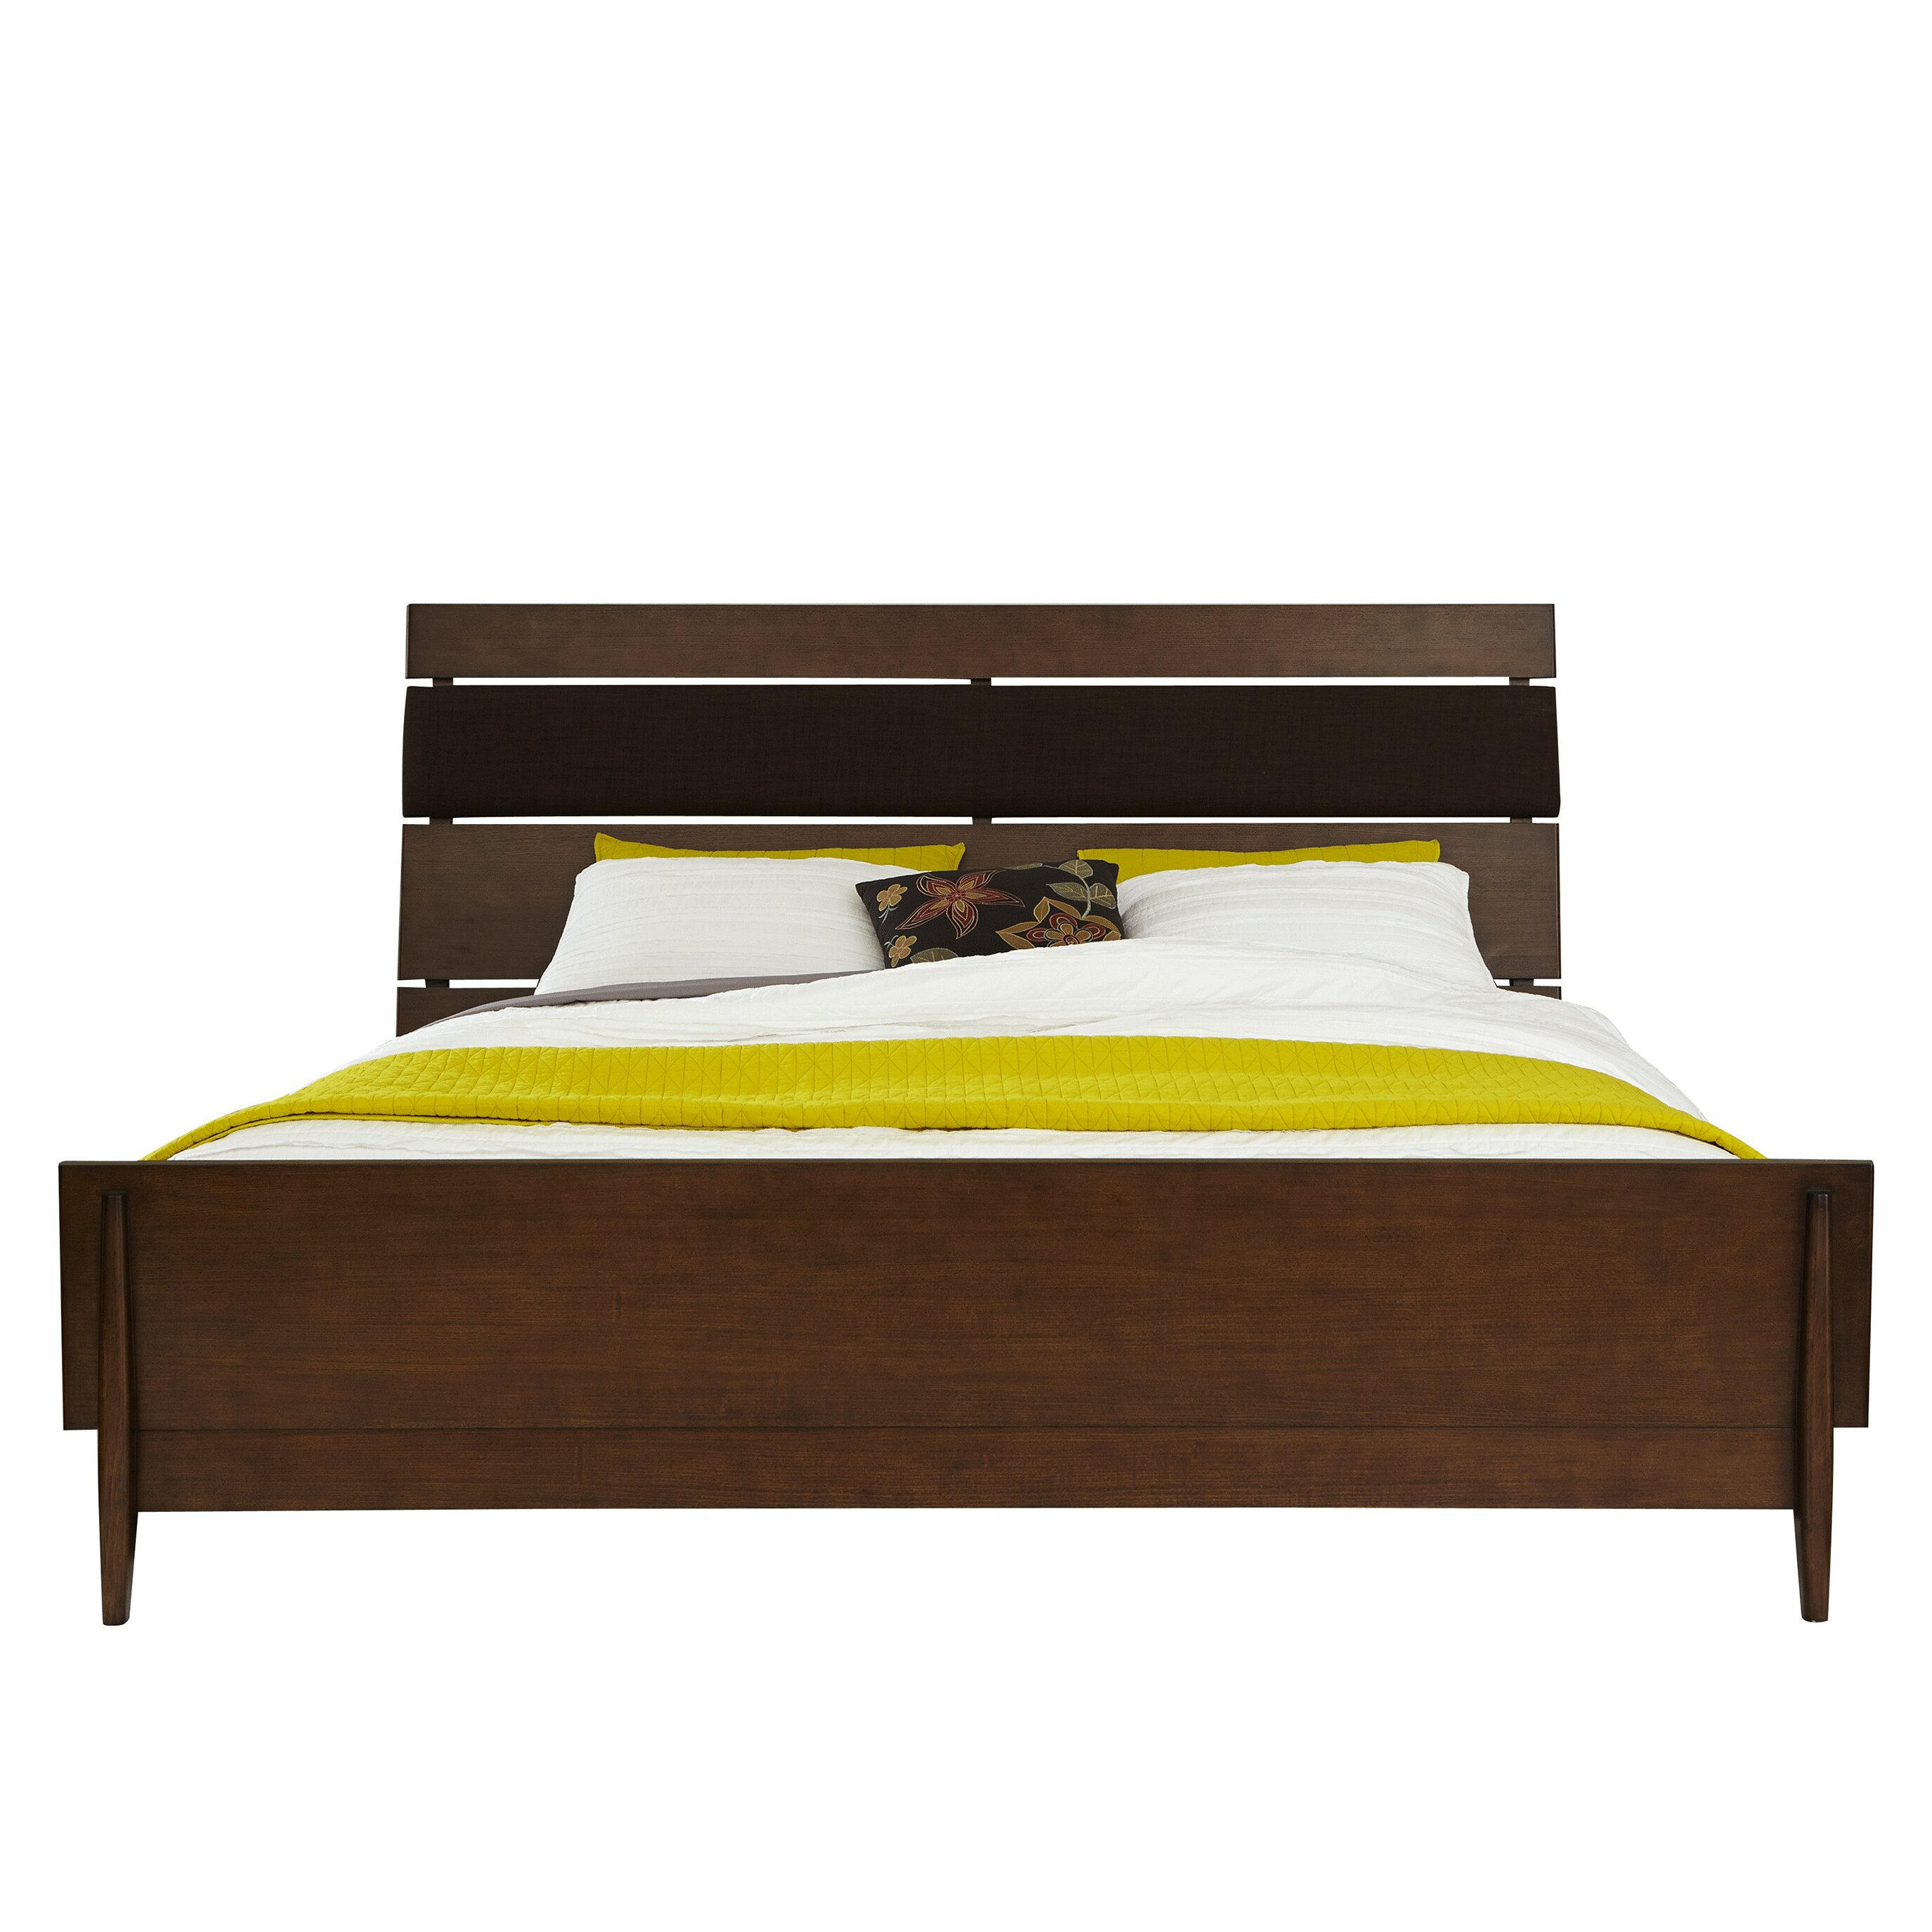 Casana Furniture Company Parallel Panel Bed Wayfair